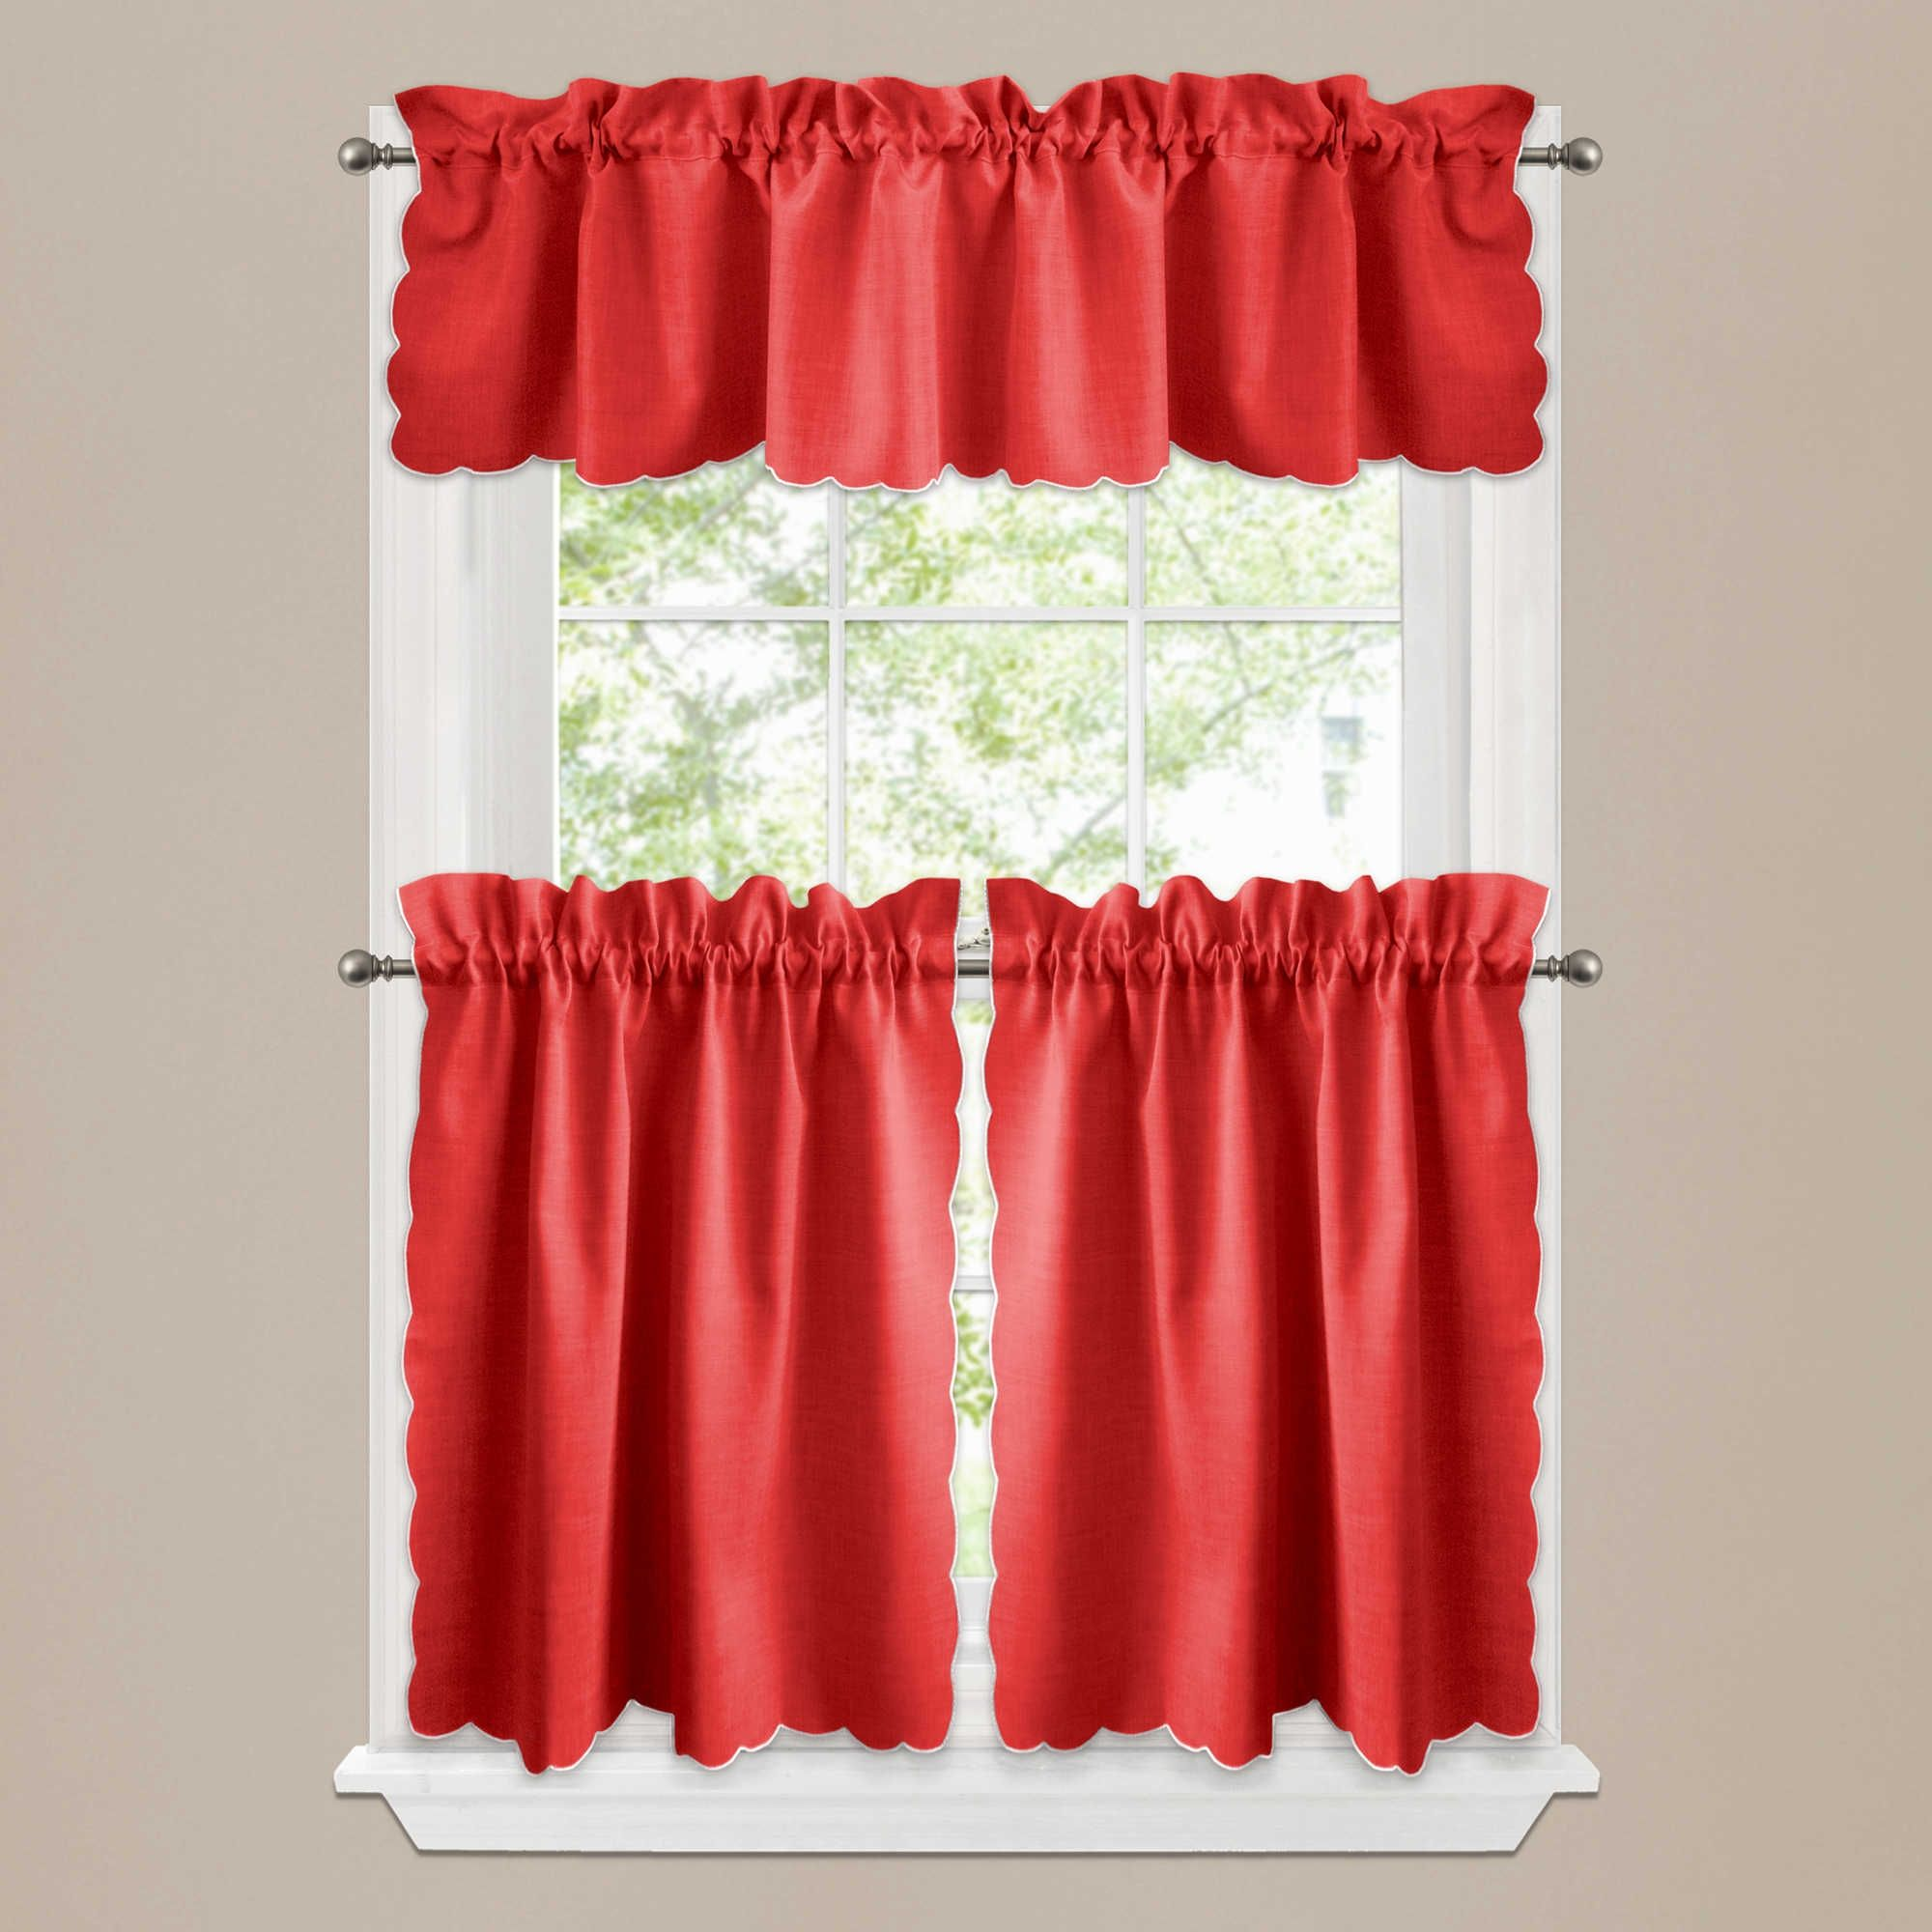 tiers decor swag fascinating curtains and kohls trends country also jcpenney with red retro including at images valance kitchen stunning ideas valances